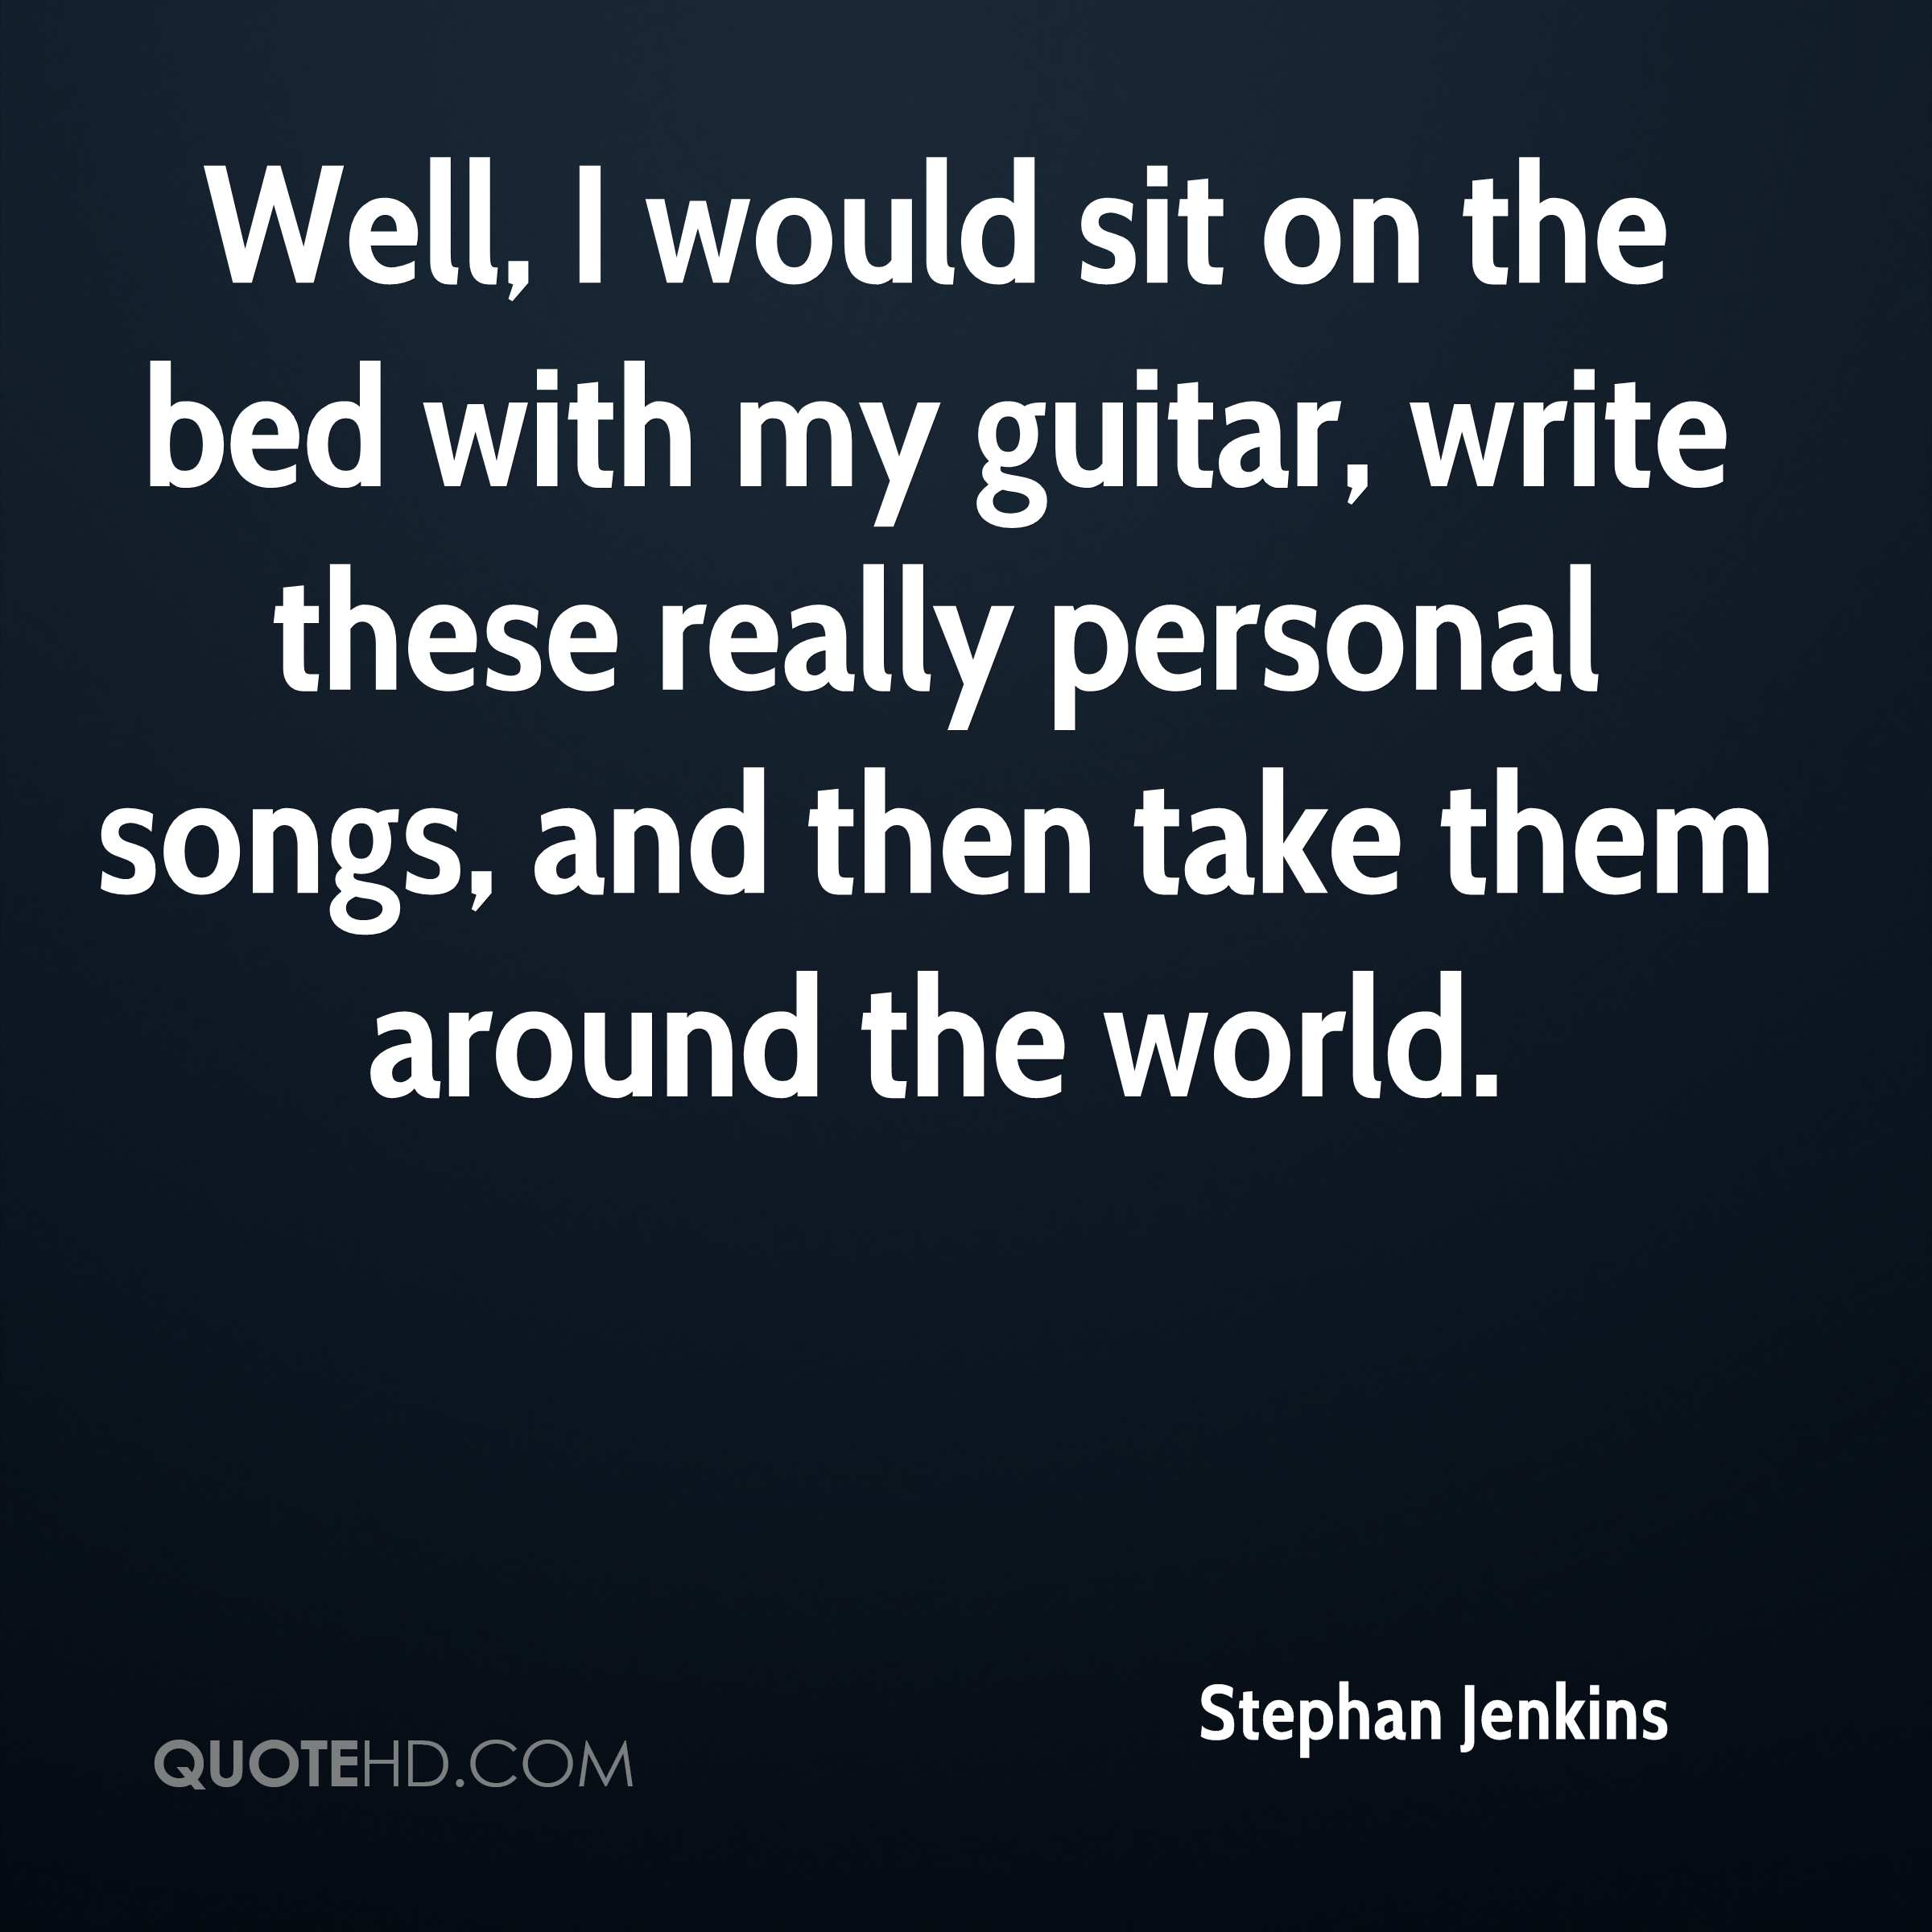 Well, I would sit on the bed with my guitar, write these really personal songs, and then take them around the world.